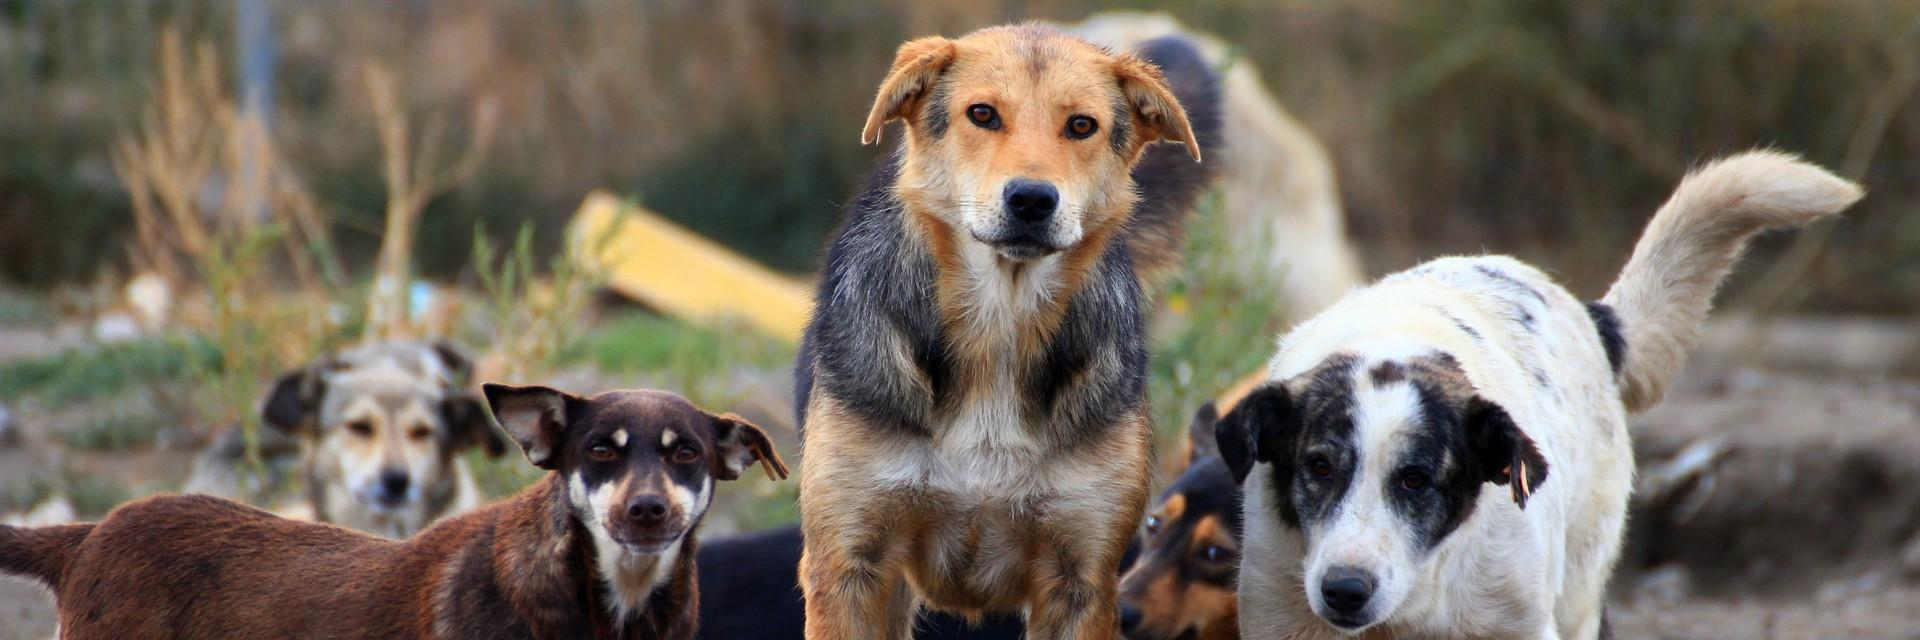 Stray dogs in Romania